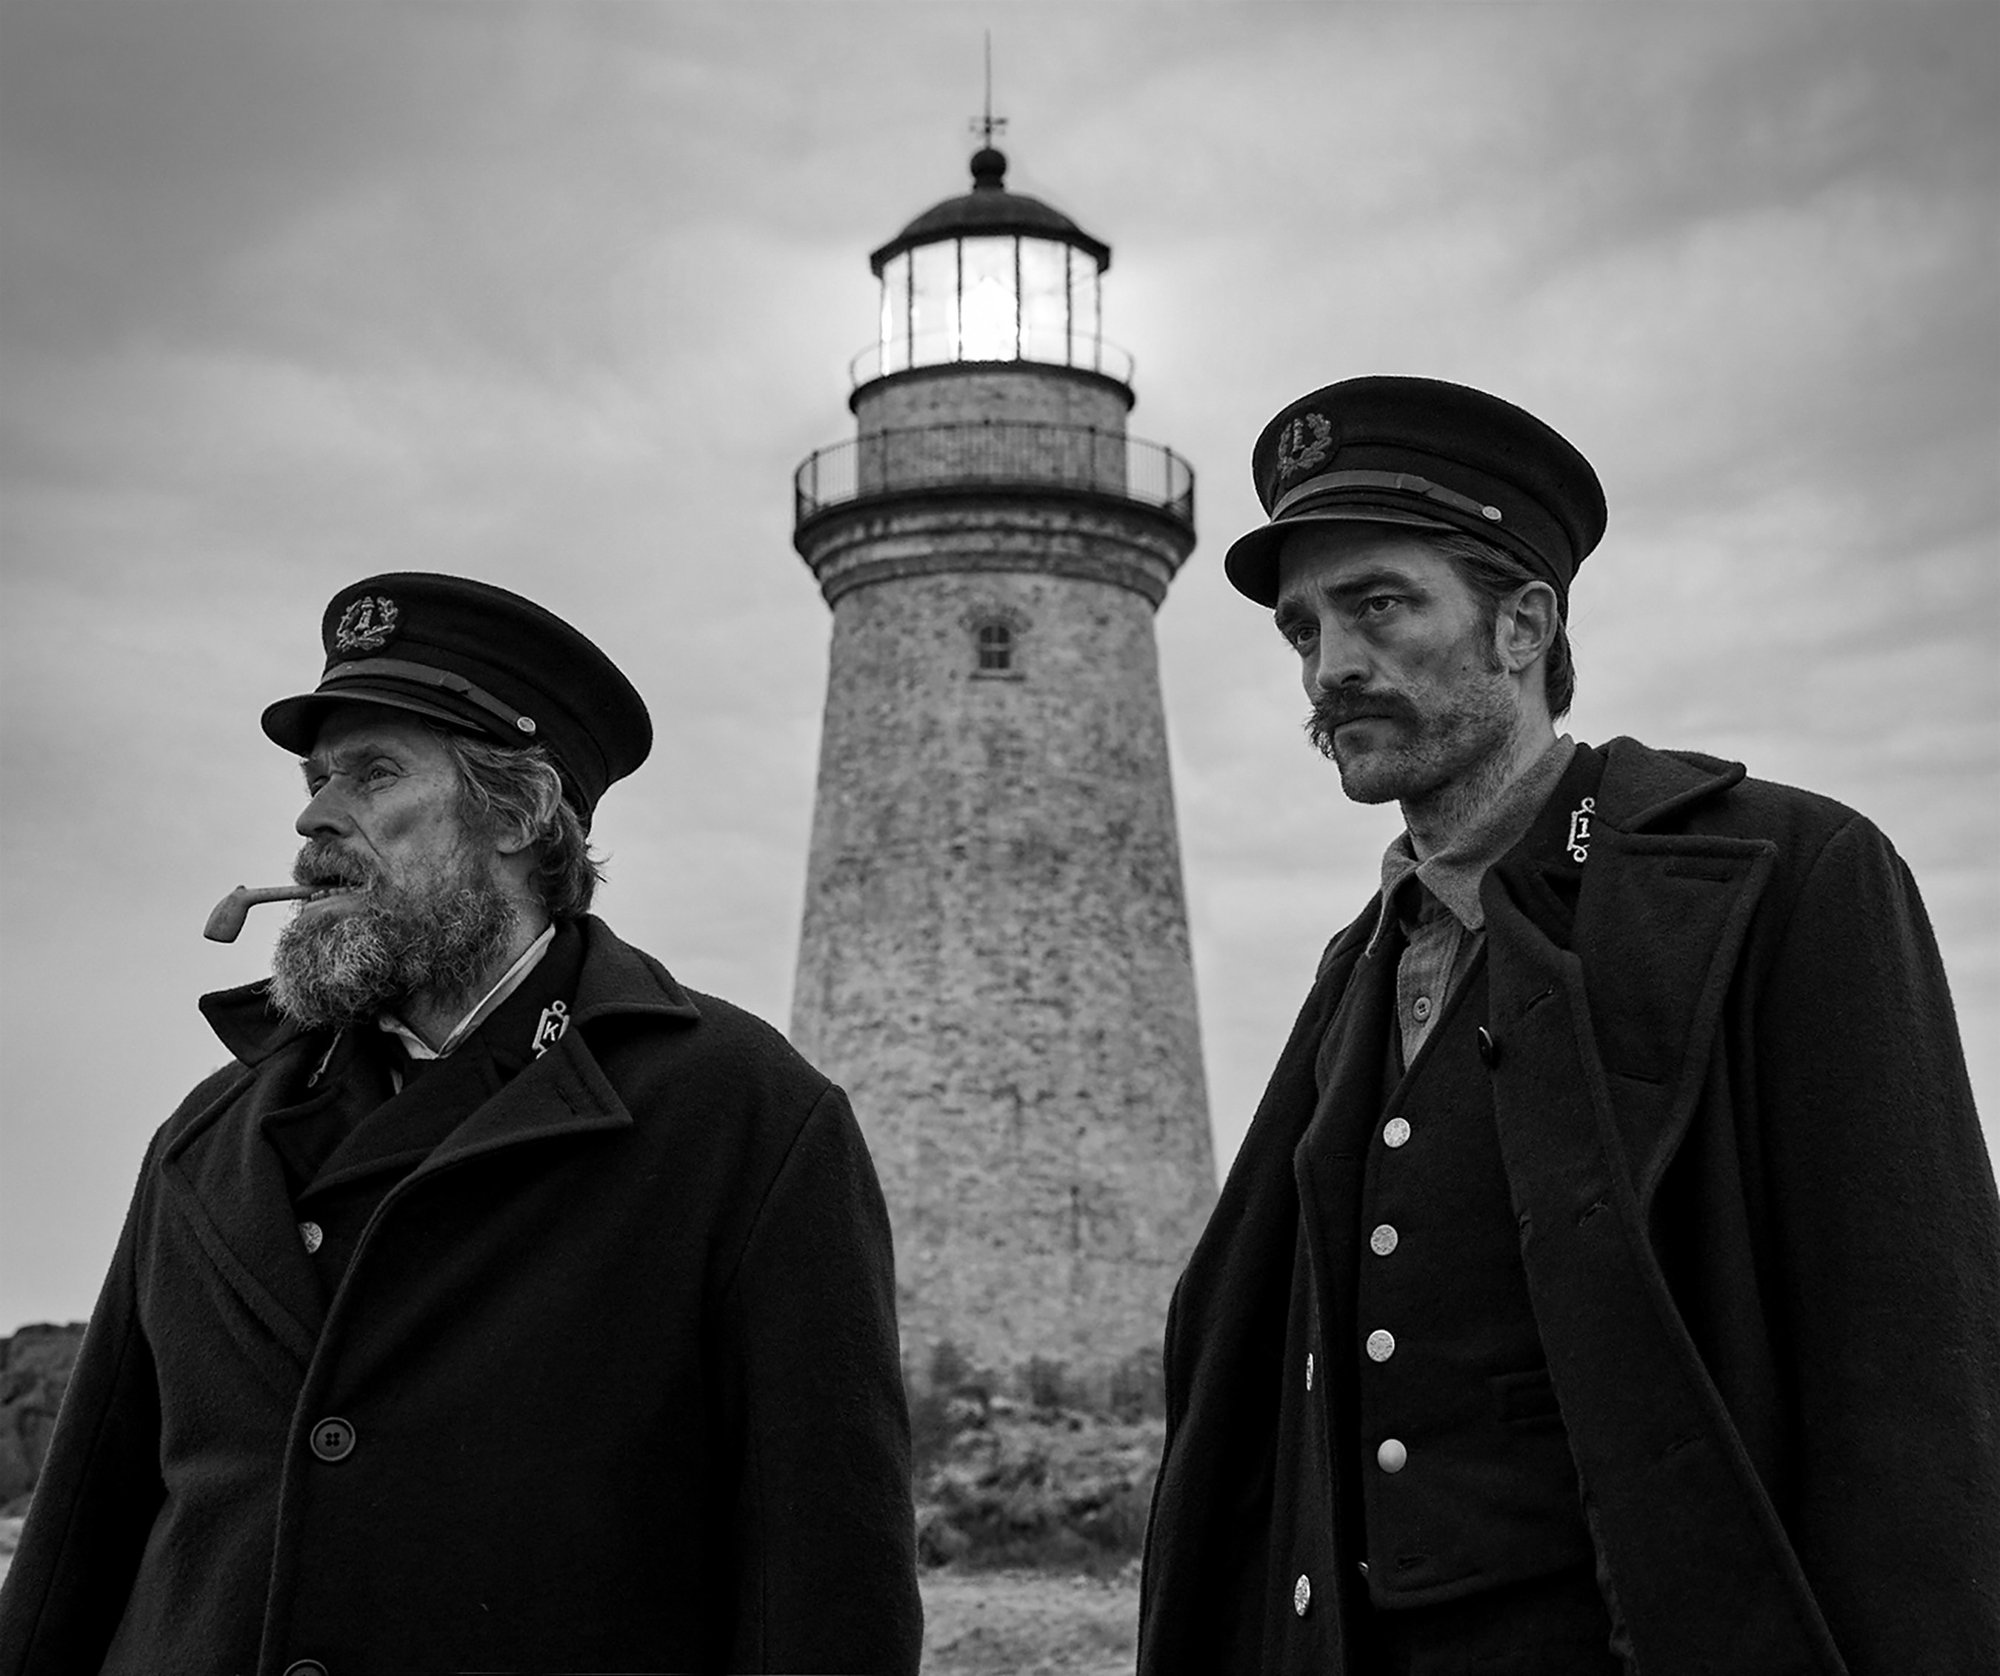 Willem Dafoe stars as Thomas Wake and Robert Pattinson stars as Ephraim Winslow in A24's The Lighthouse (2019)